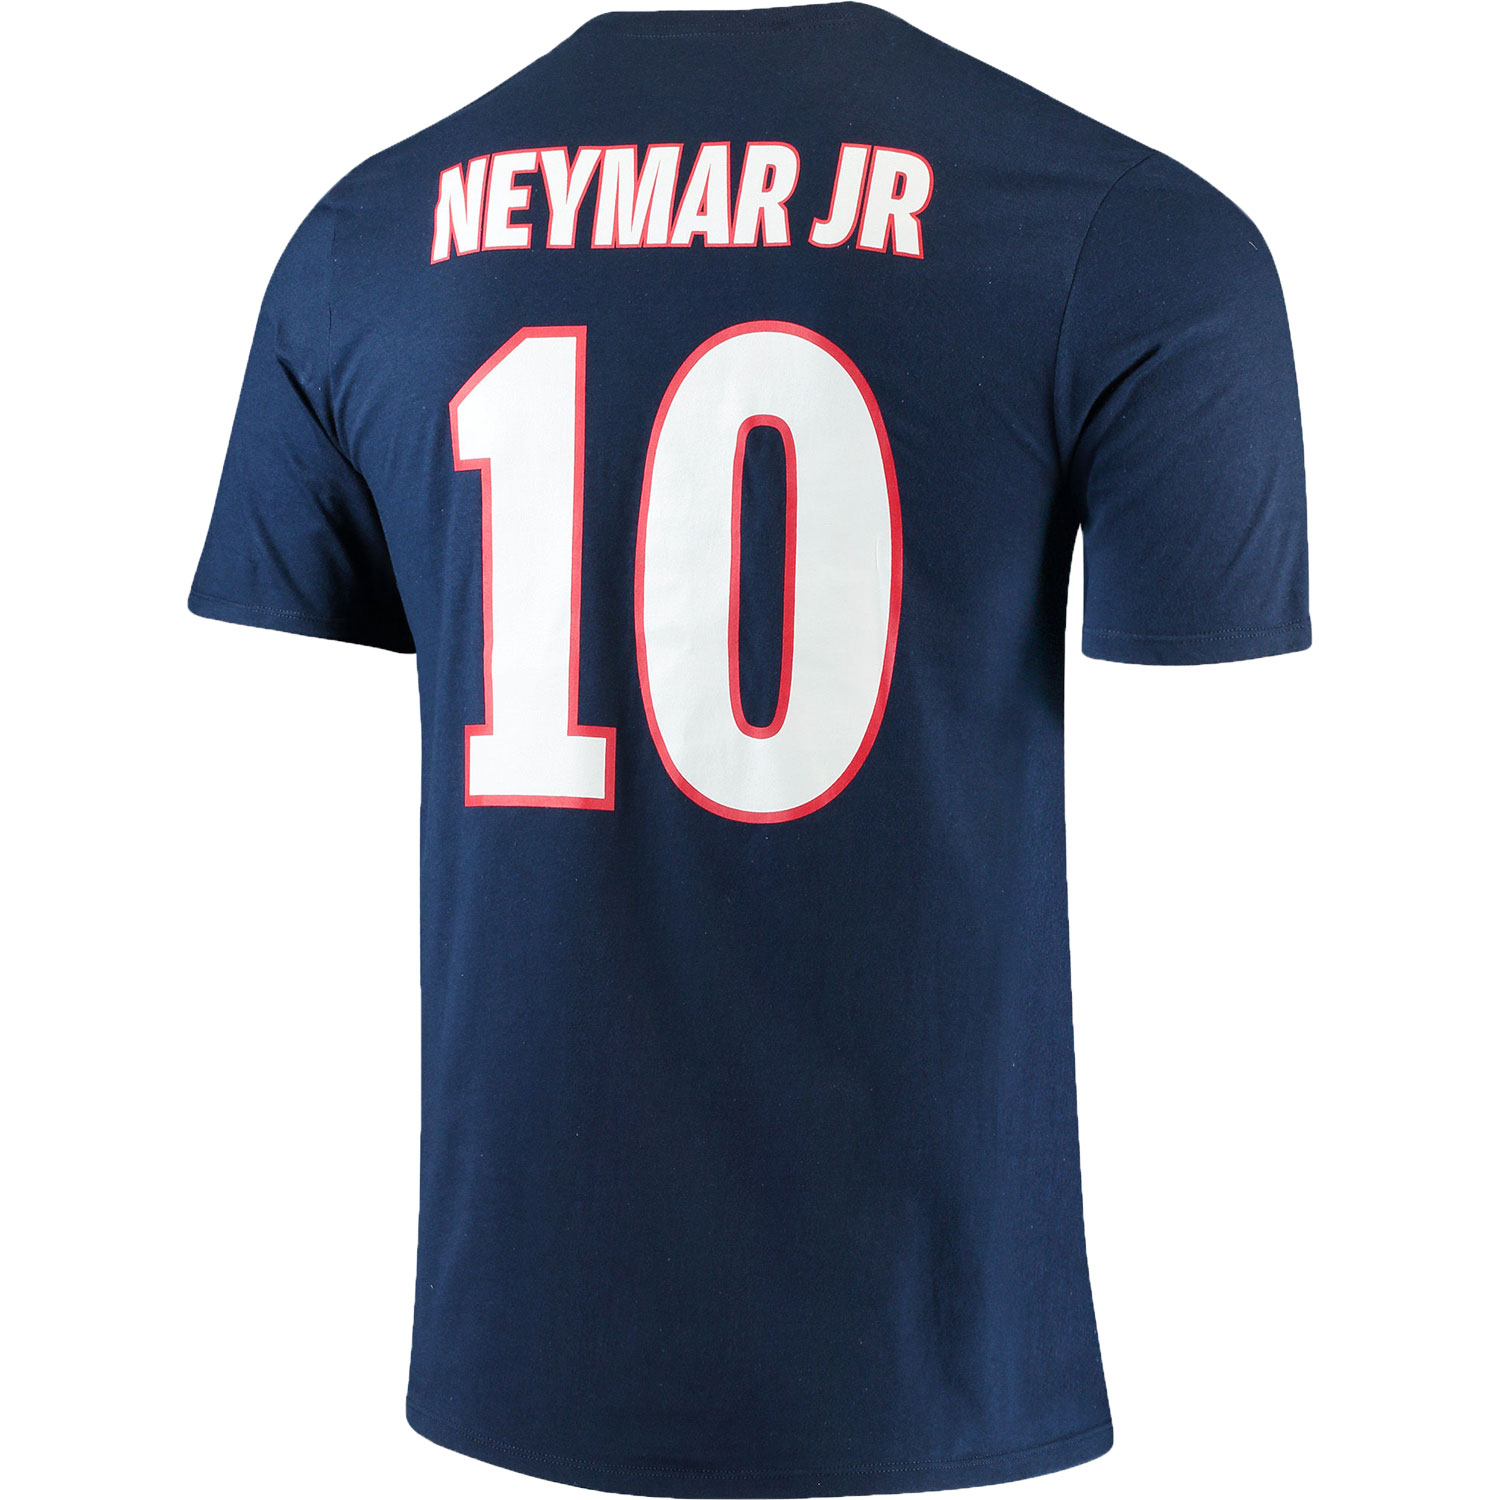 nike paris saint germain neymar jr hero ss t shirt. Black Bedroom Furniture Sets. Home Design Ideas